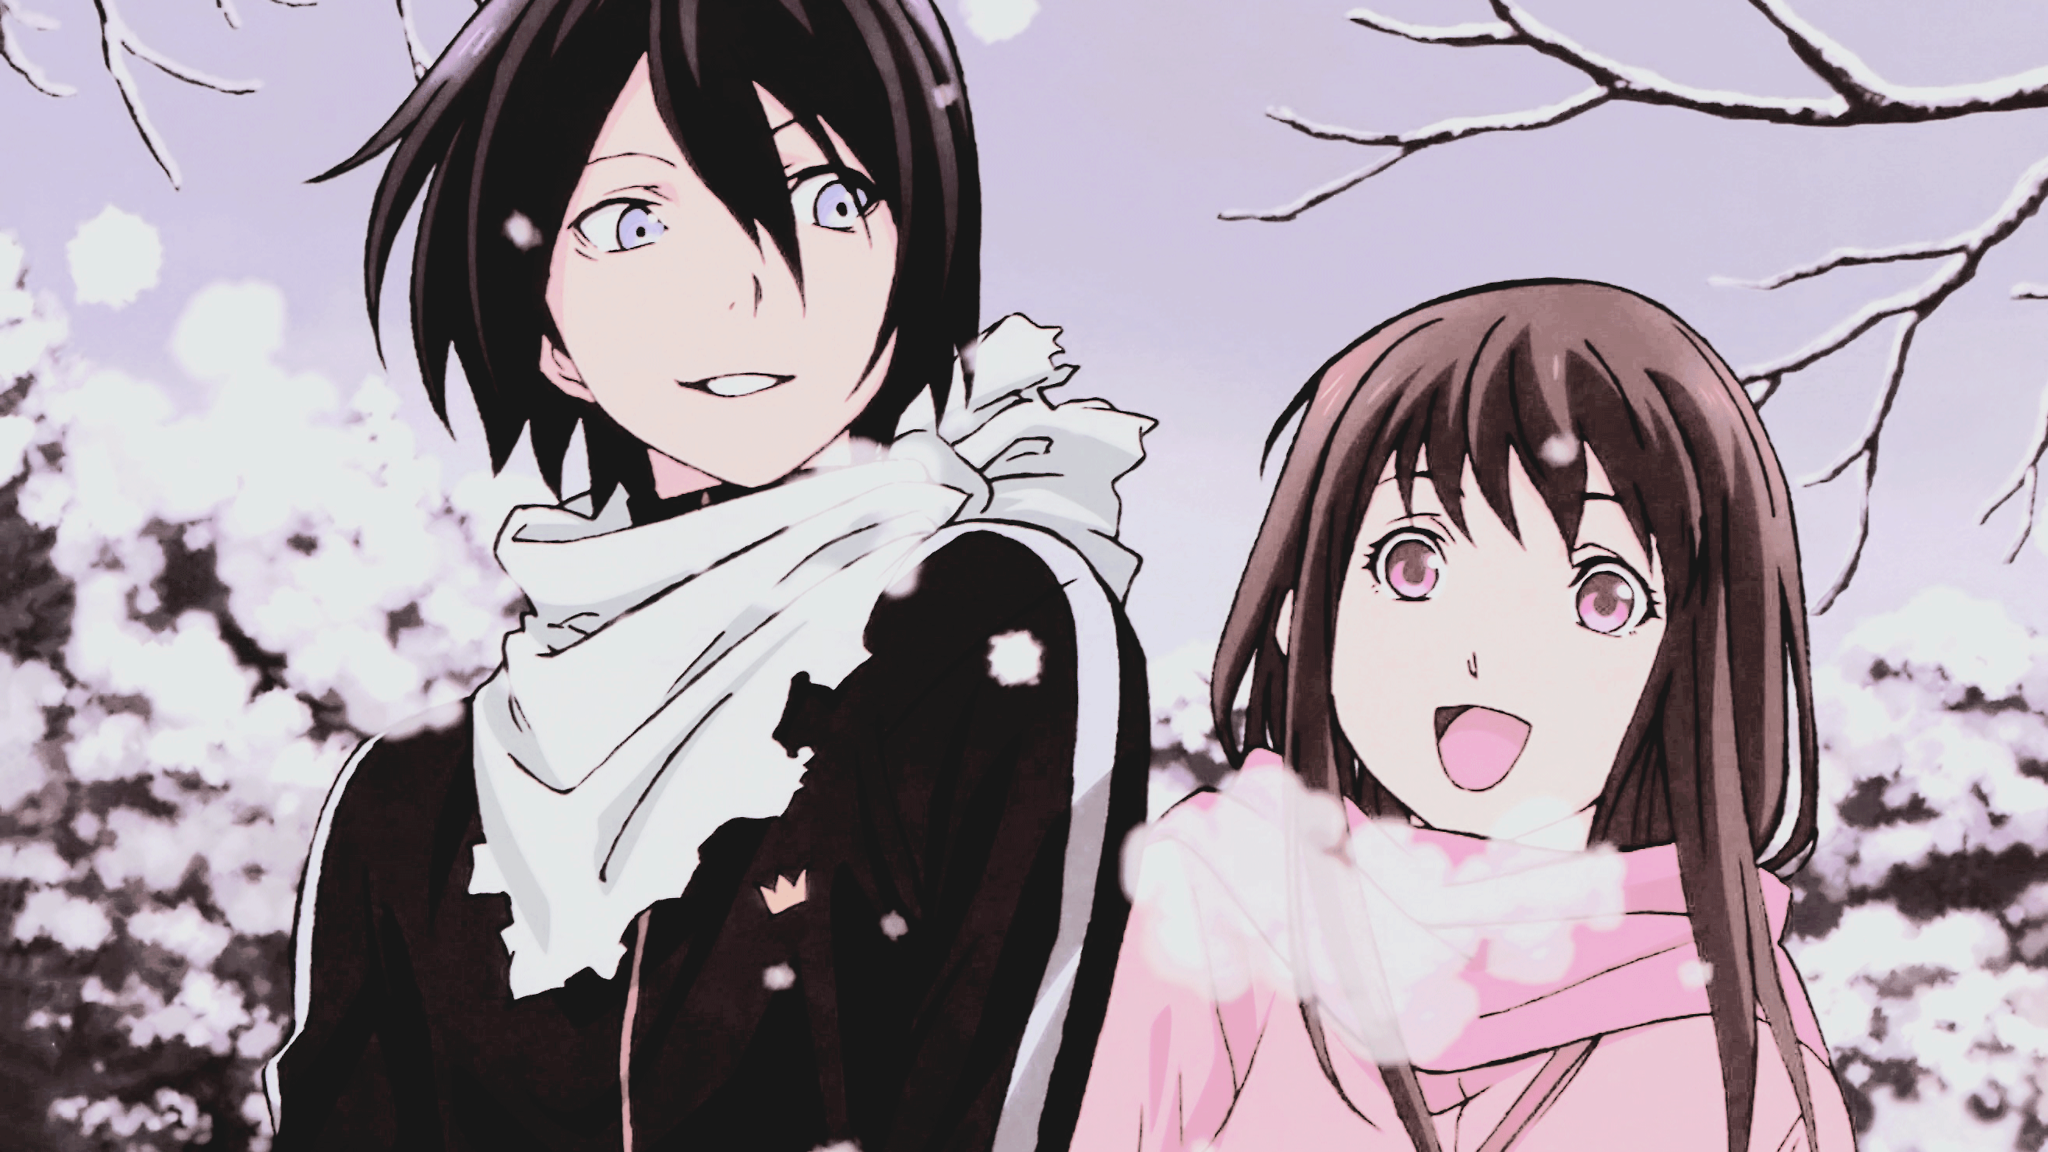 Yato Computer Wallpaper